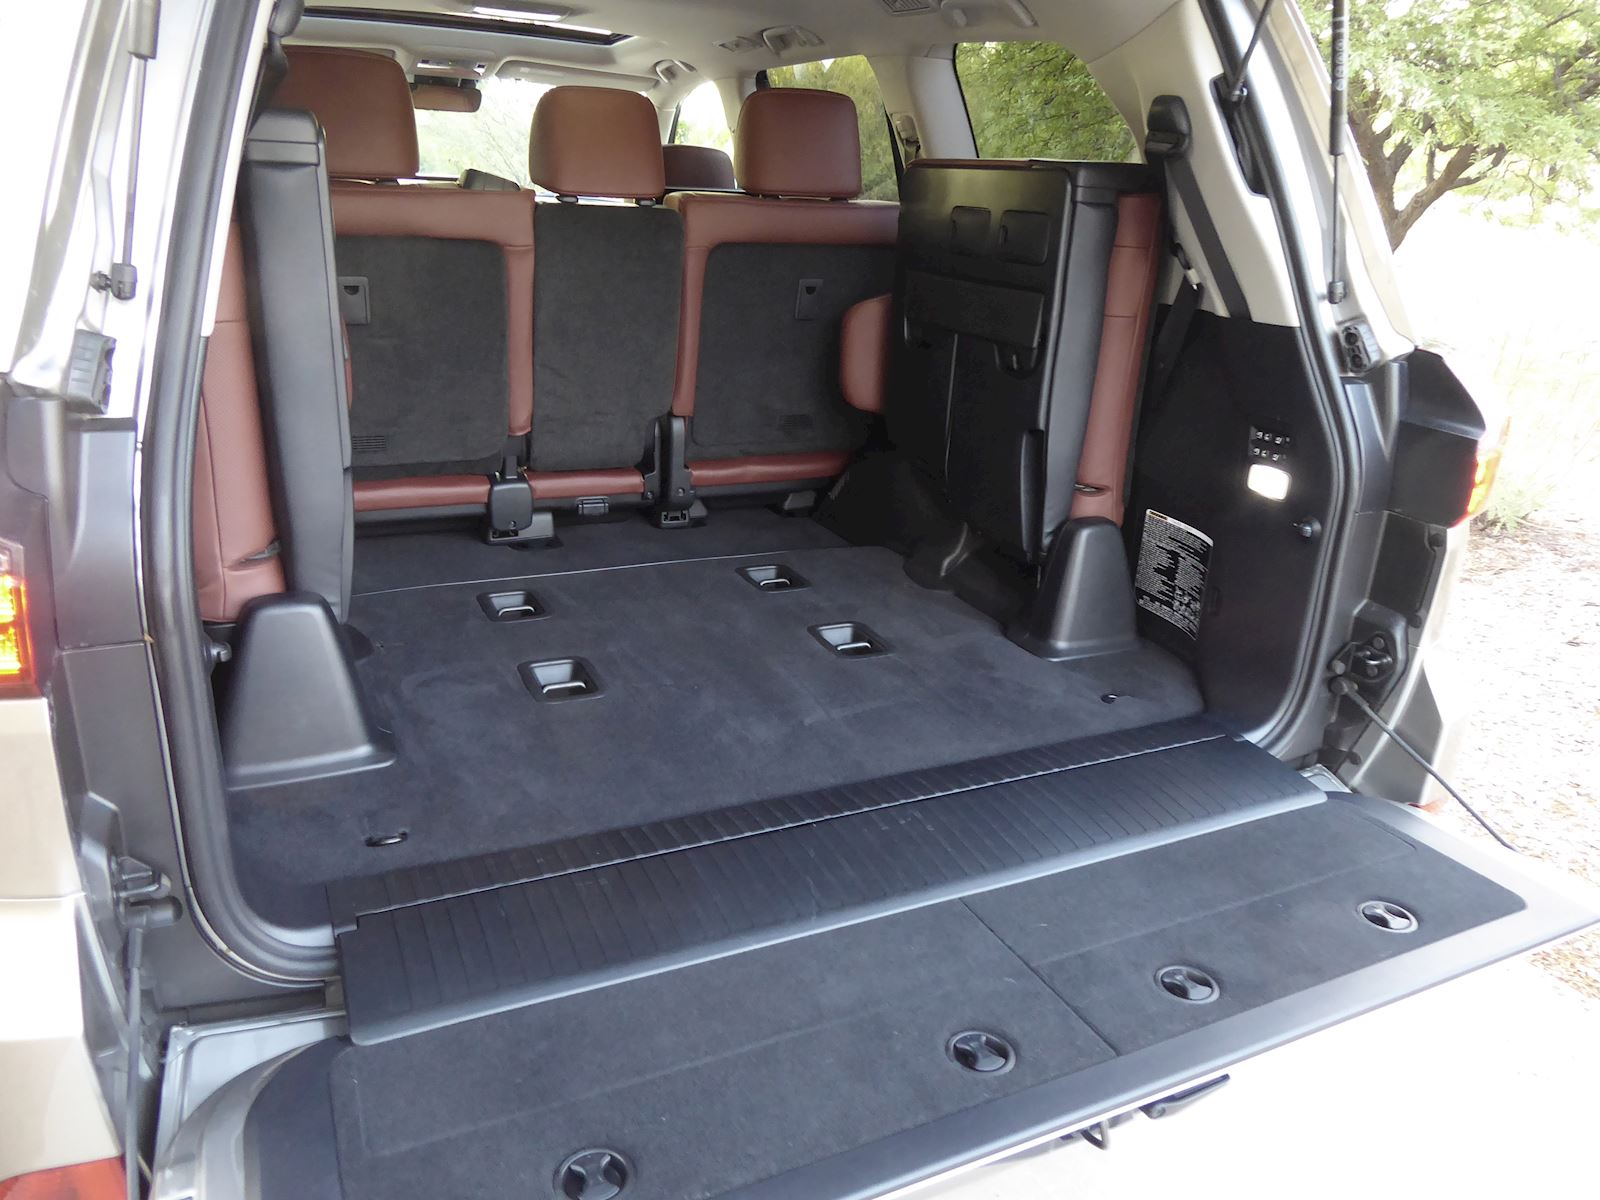 2020 Lexus LX 570 Storage & Cargo Space